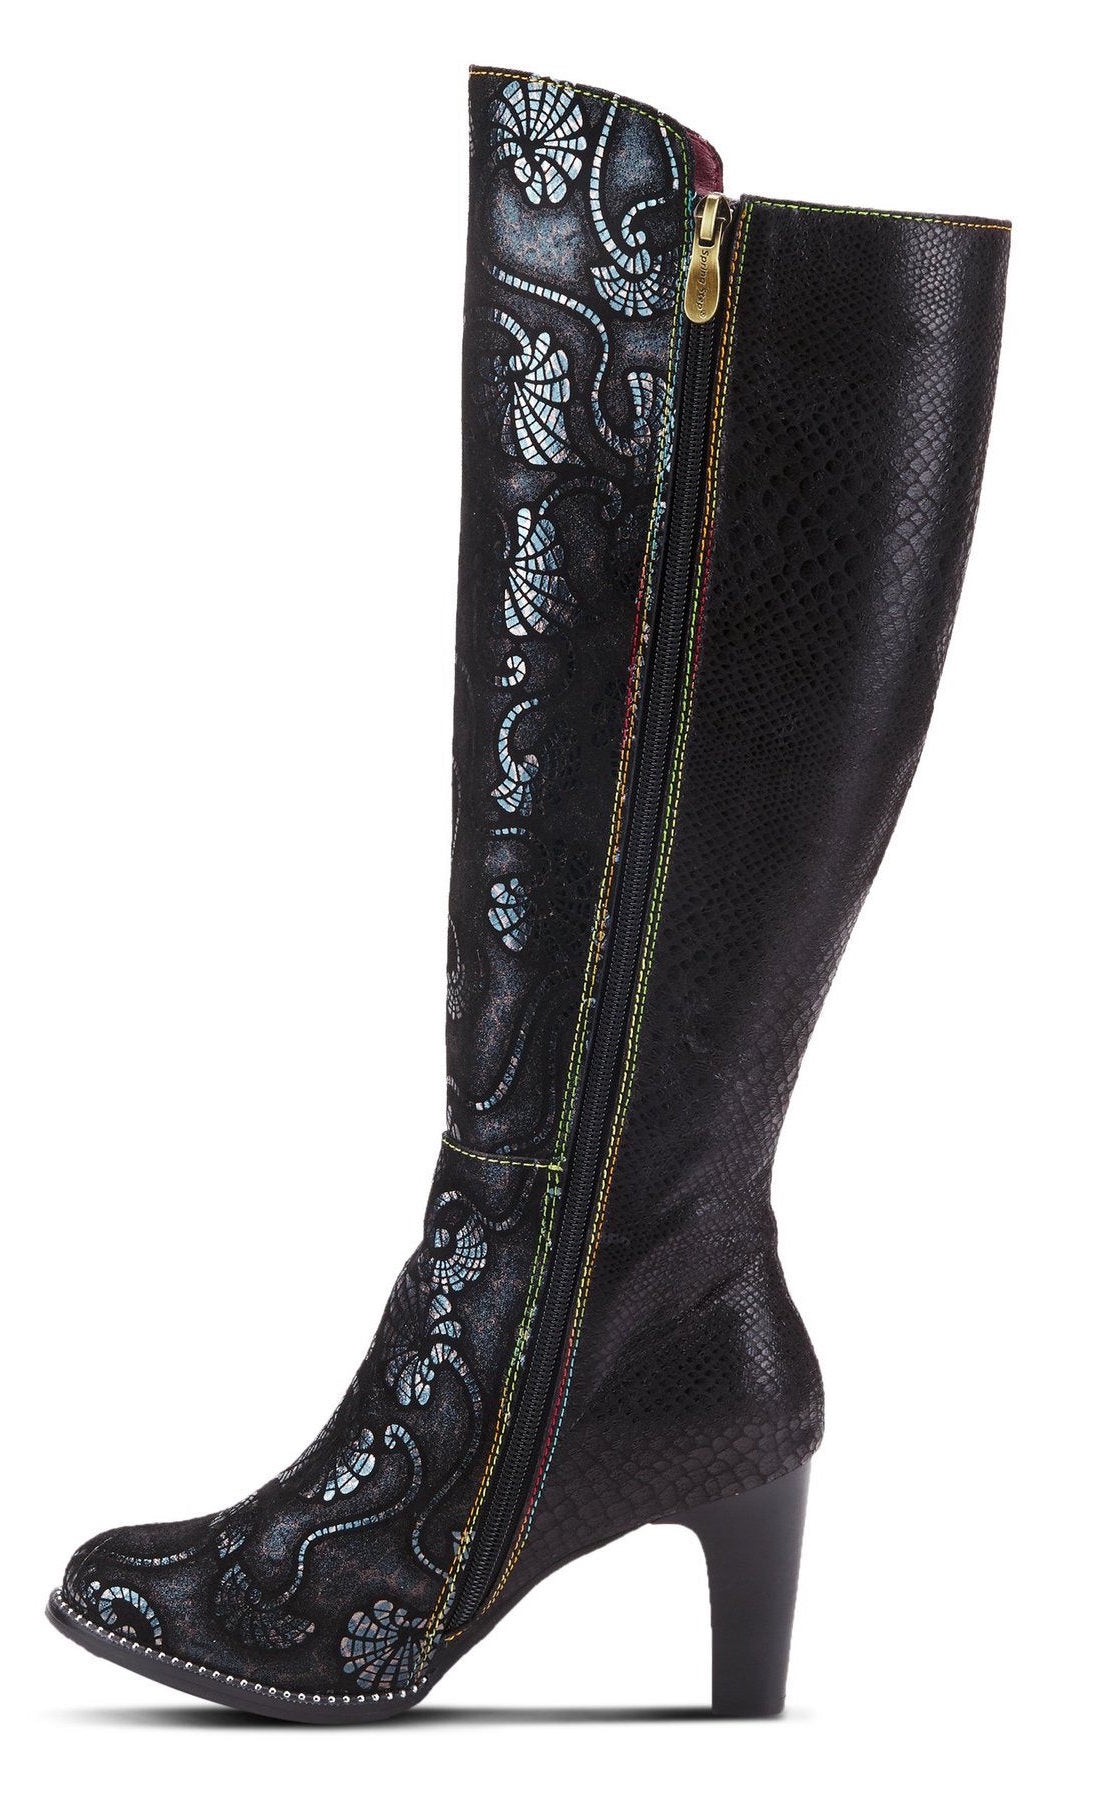 Gorjus Swirls Boot